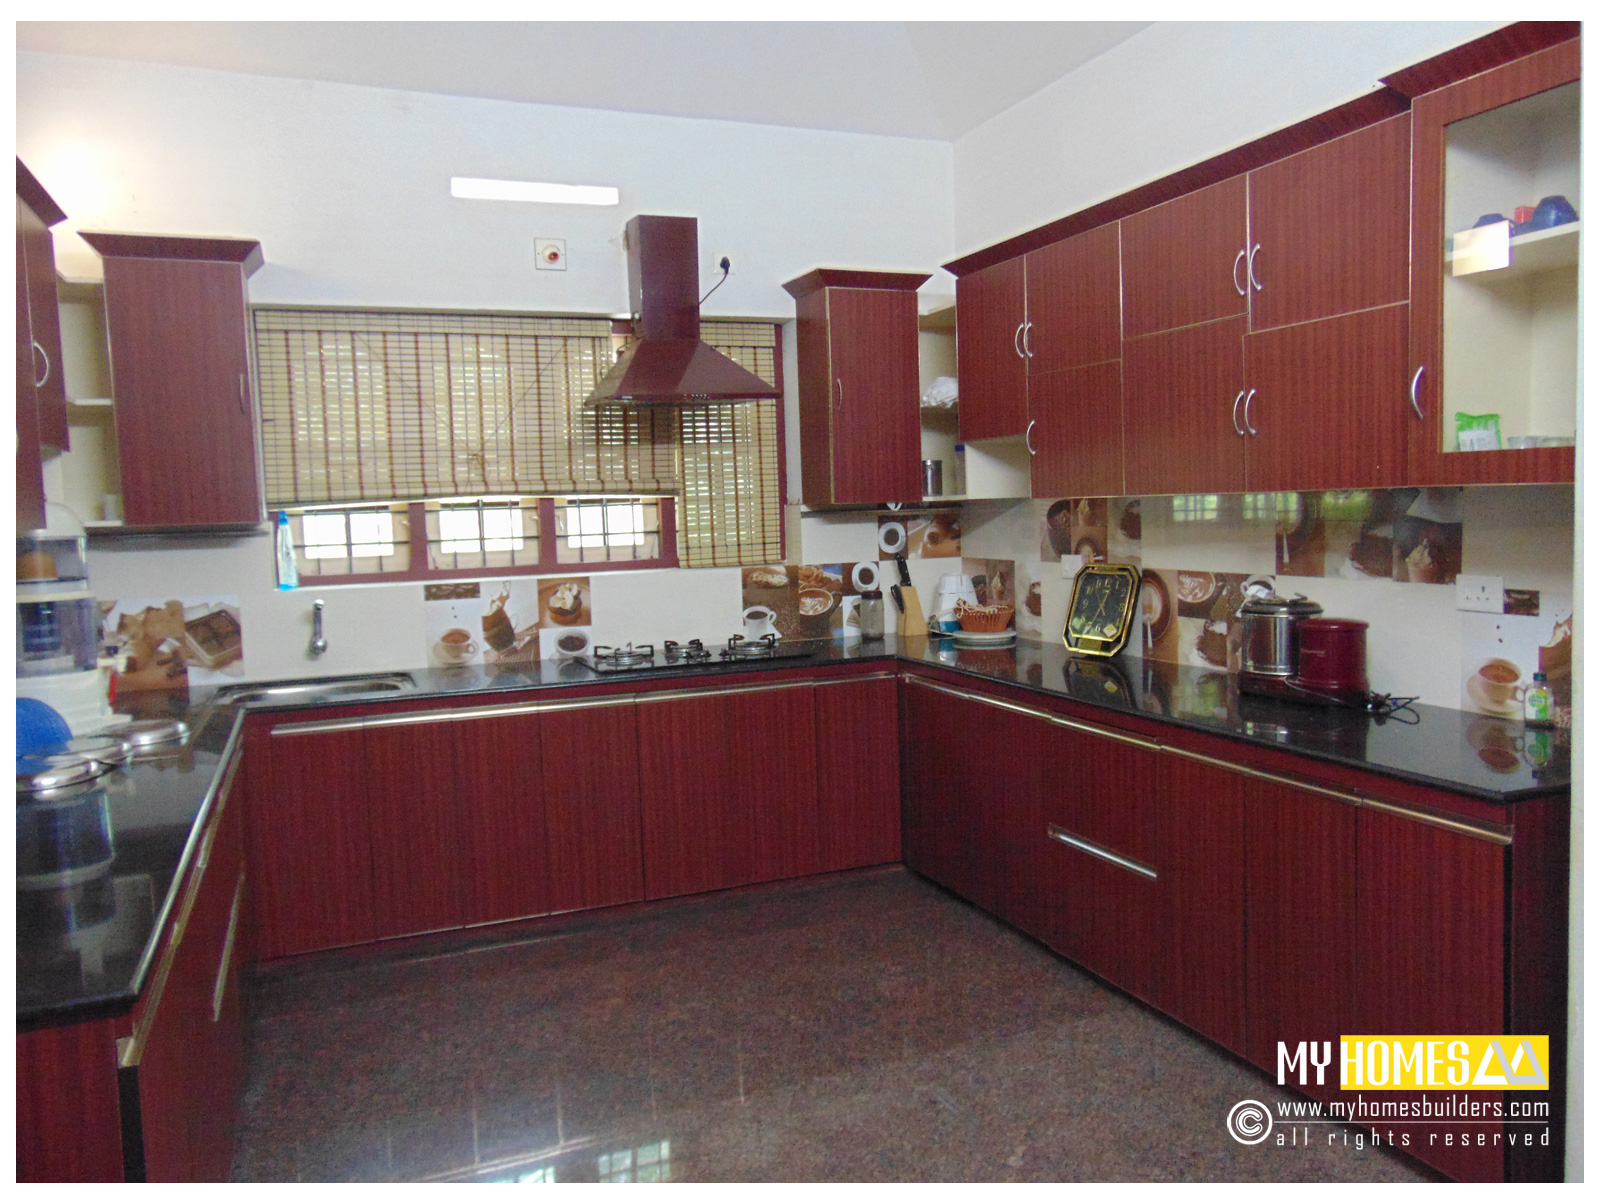 New kitchen designs in kerala home photos by design for New home kitchen ideas